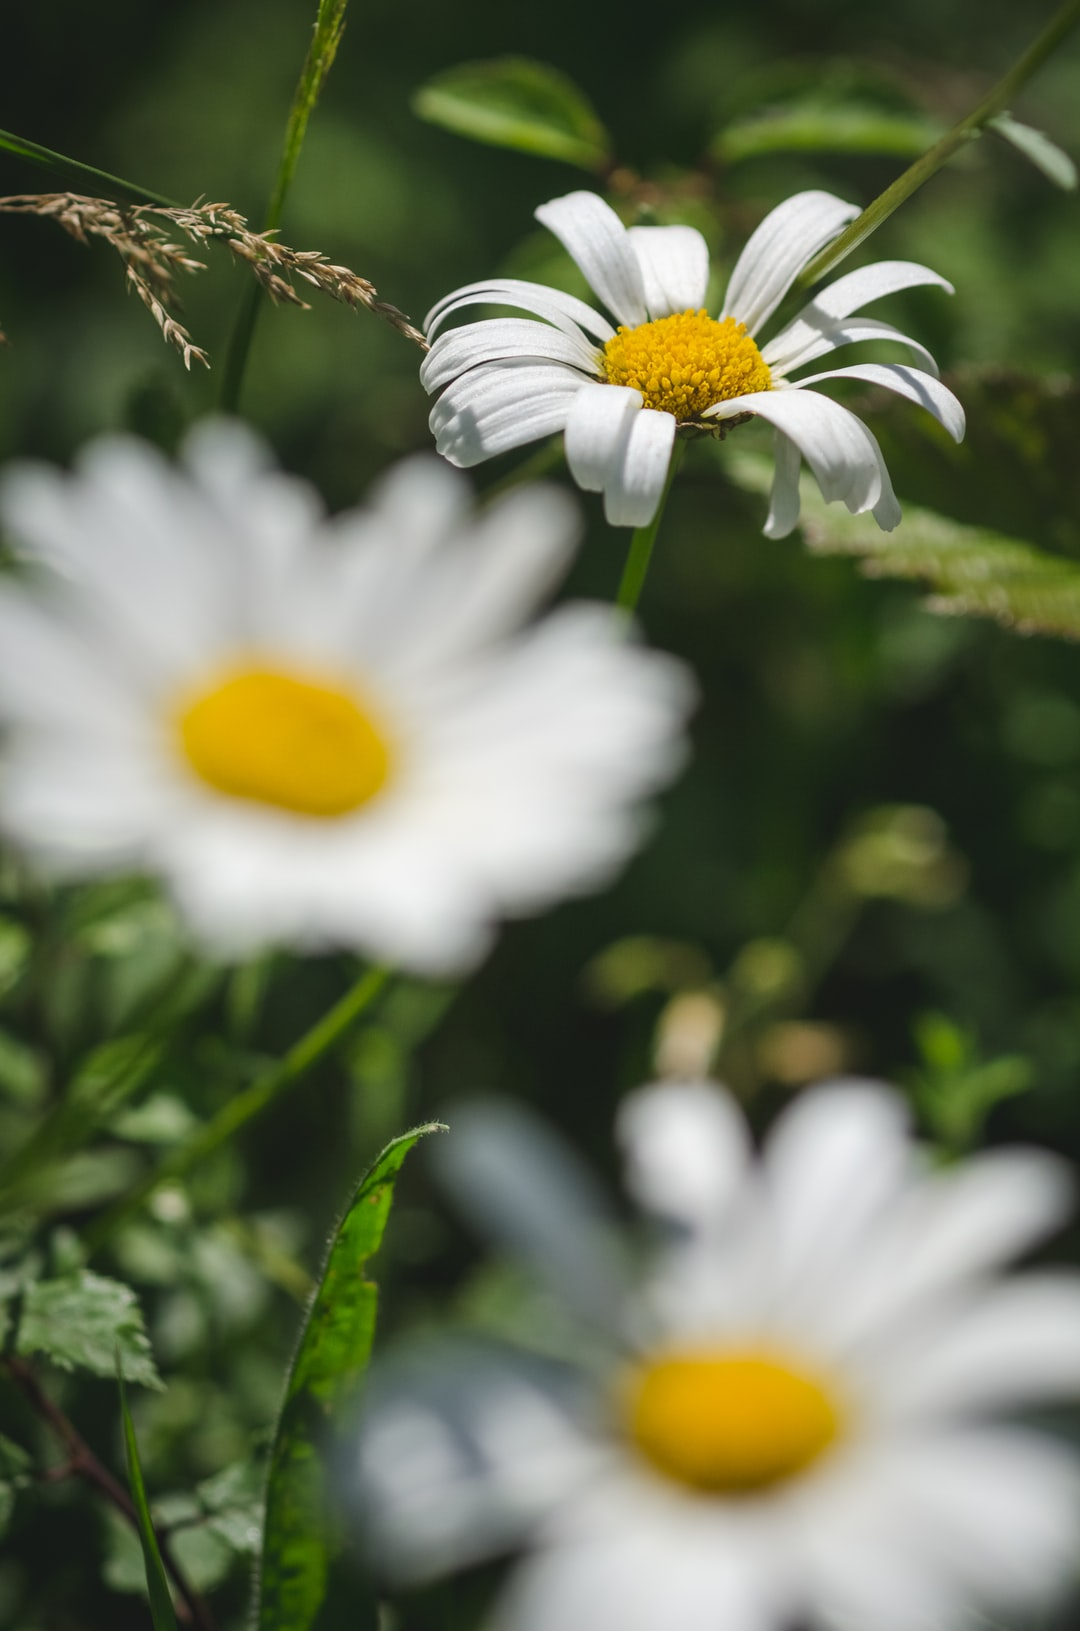 Bellis perennis, daisy flowers in a meadow during summertime